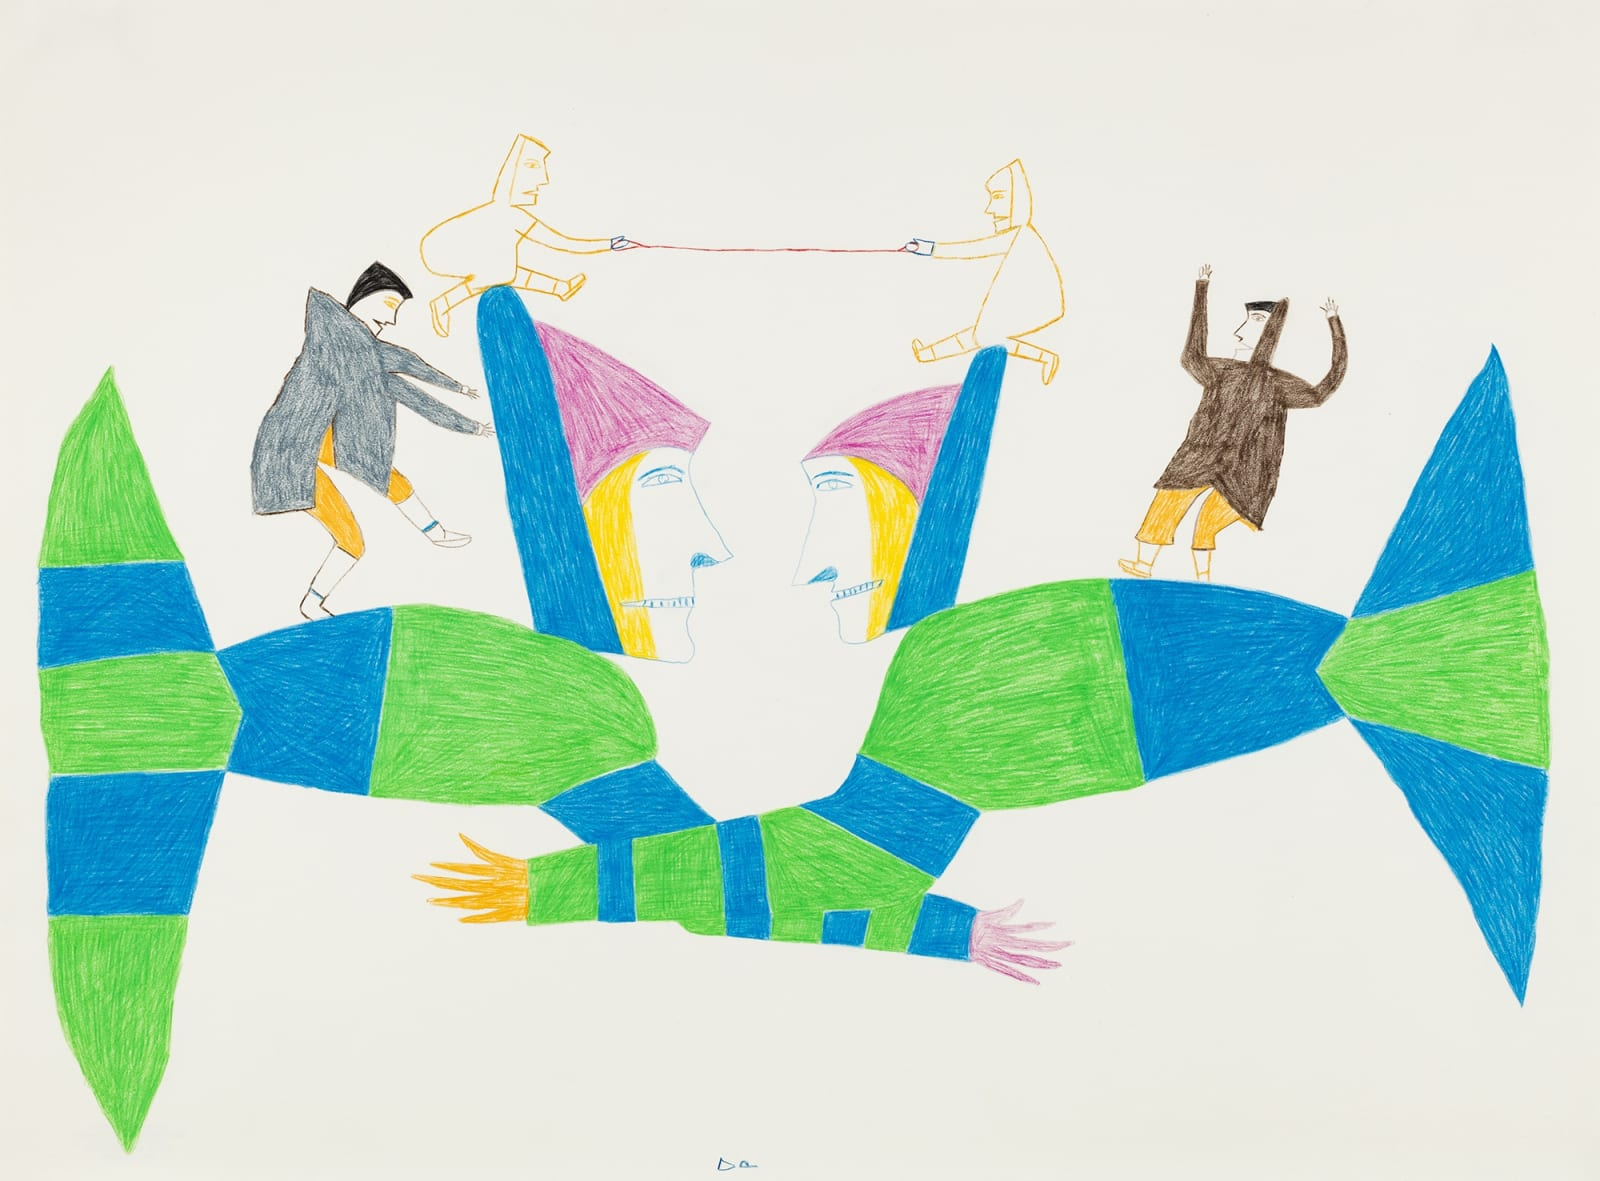 Lot 44 JESSIE OONARK, O.C., R.C.A (1906-1985) QAMANI'TUAQ (BAKER LAKE) Challenging Wrestle, c. 1975-76 coloured pencil drawing, 29.875 x 22.175 in (76 x 56 cm) Estimate: $6,000⁠ — $9,000 Price realized: $7,200